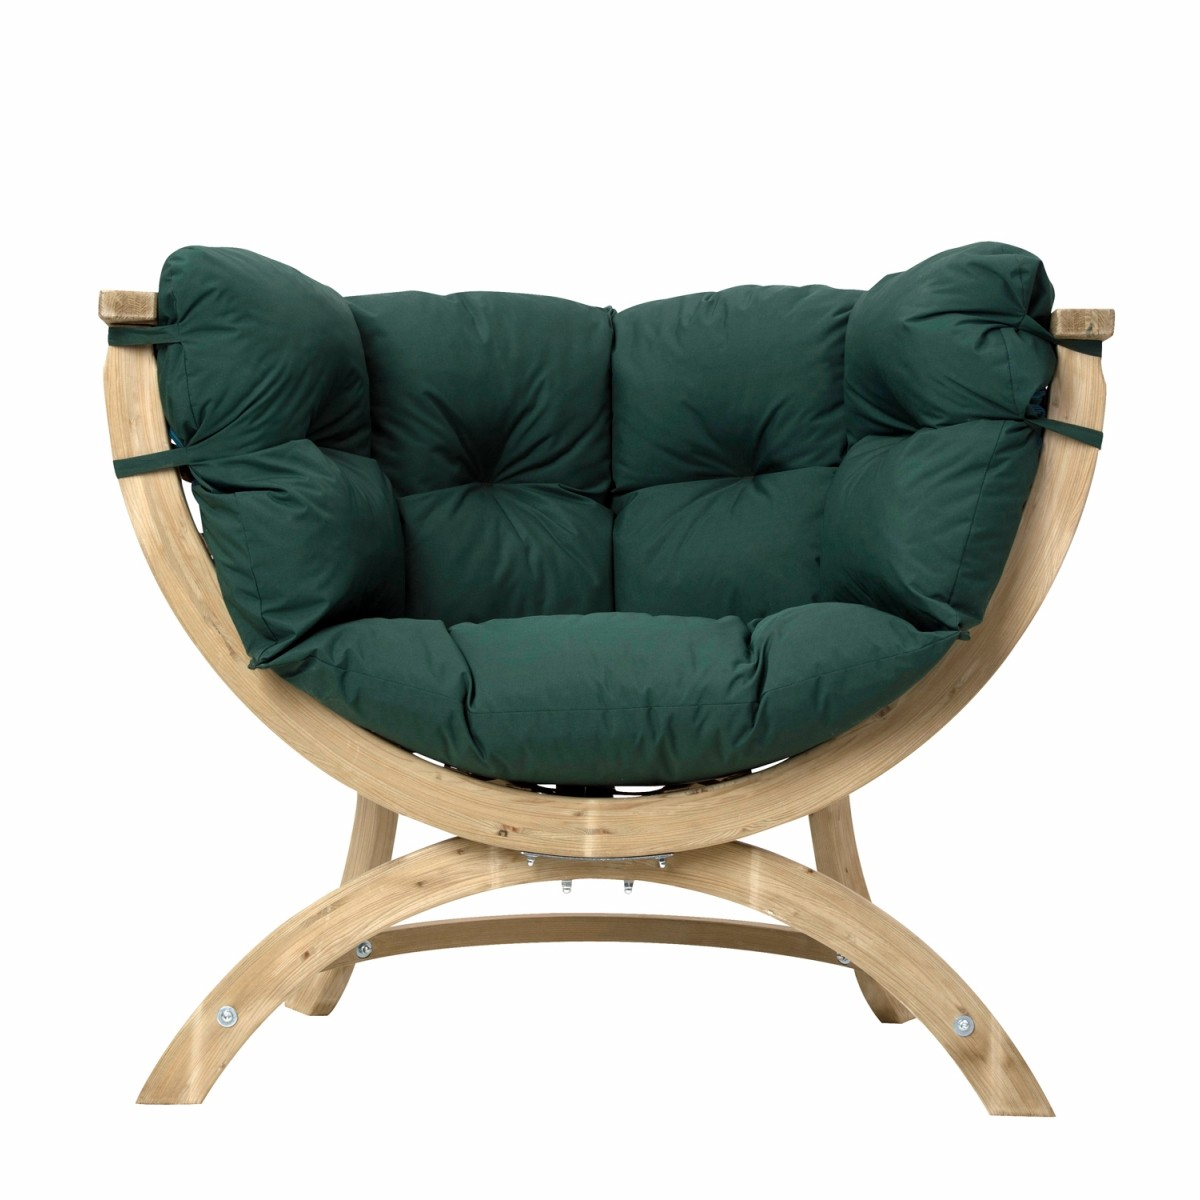 Amazonas fauteuil simple siena vert waterproof for Fauteuil simple